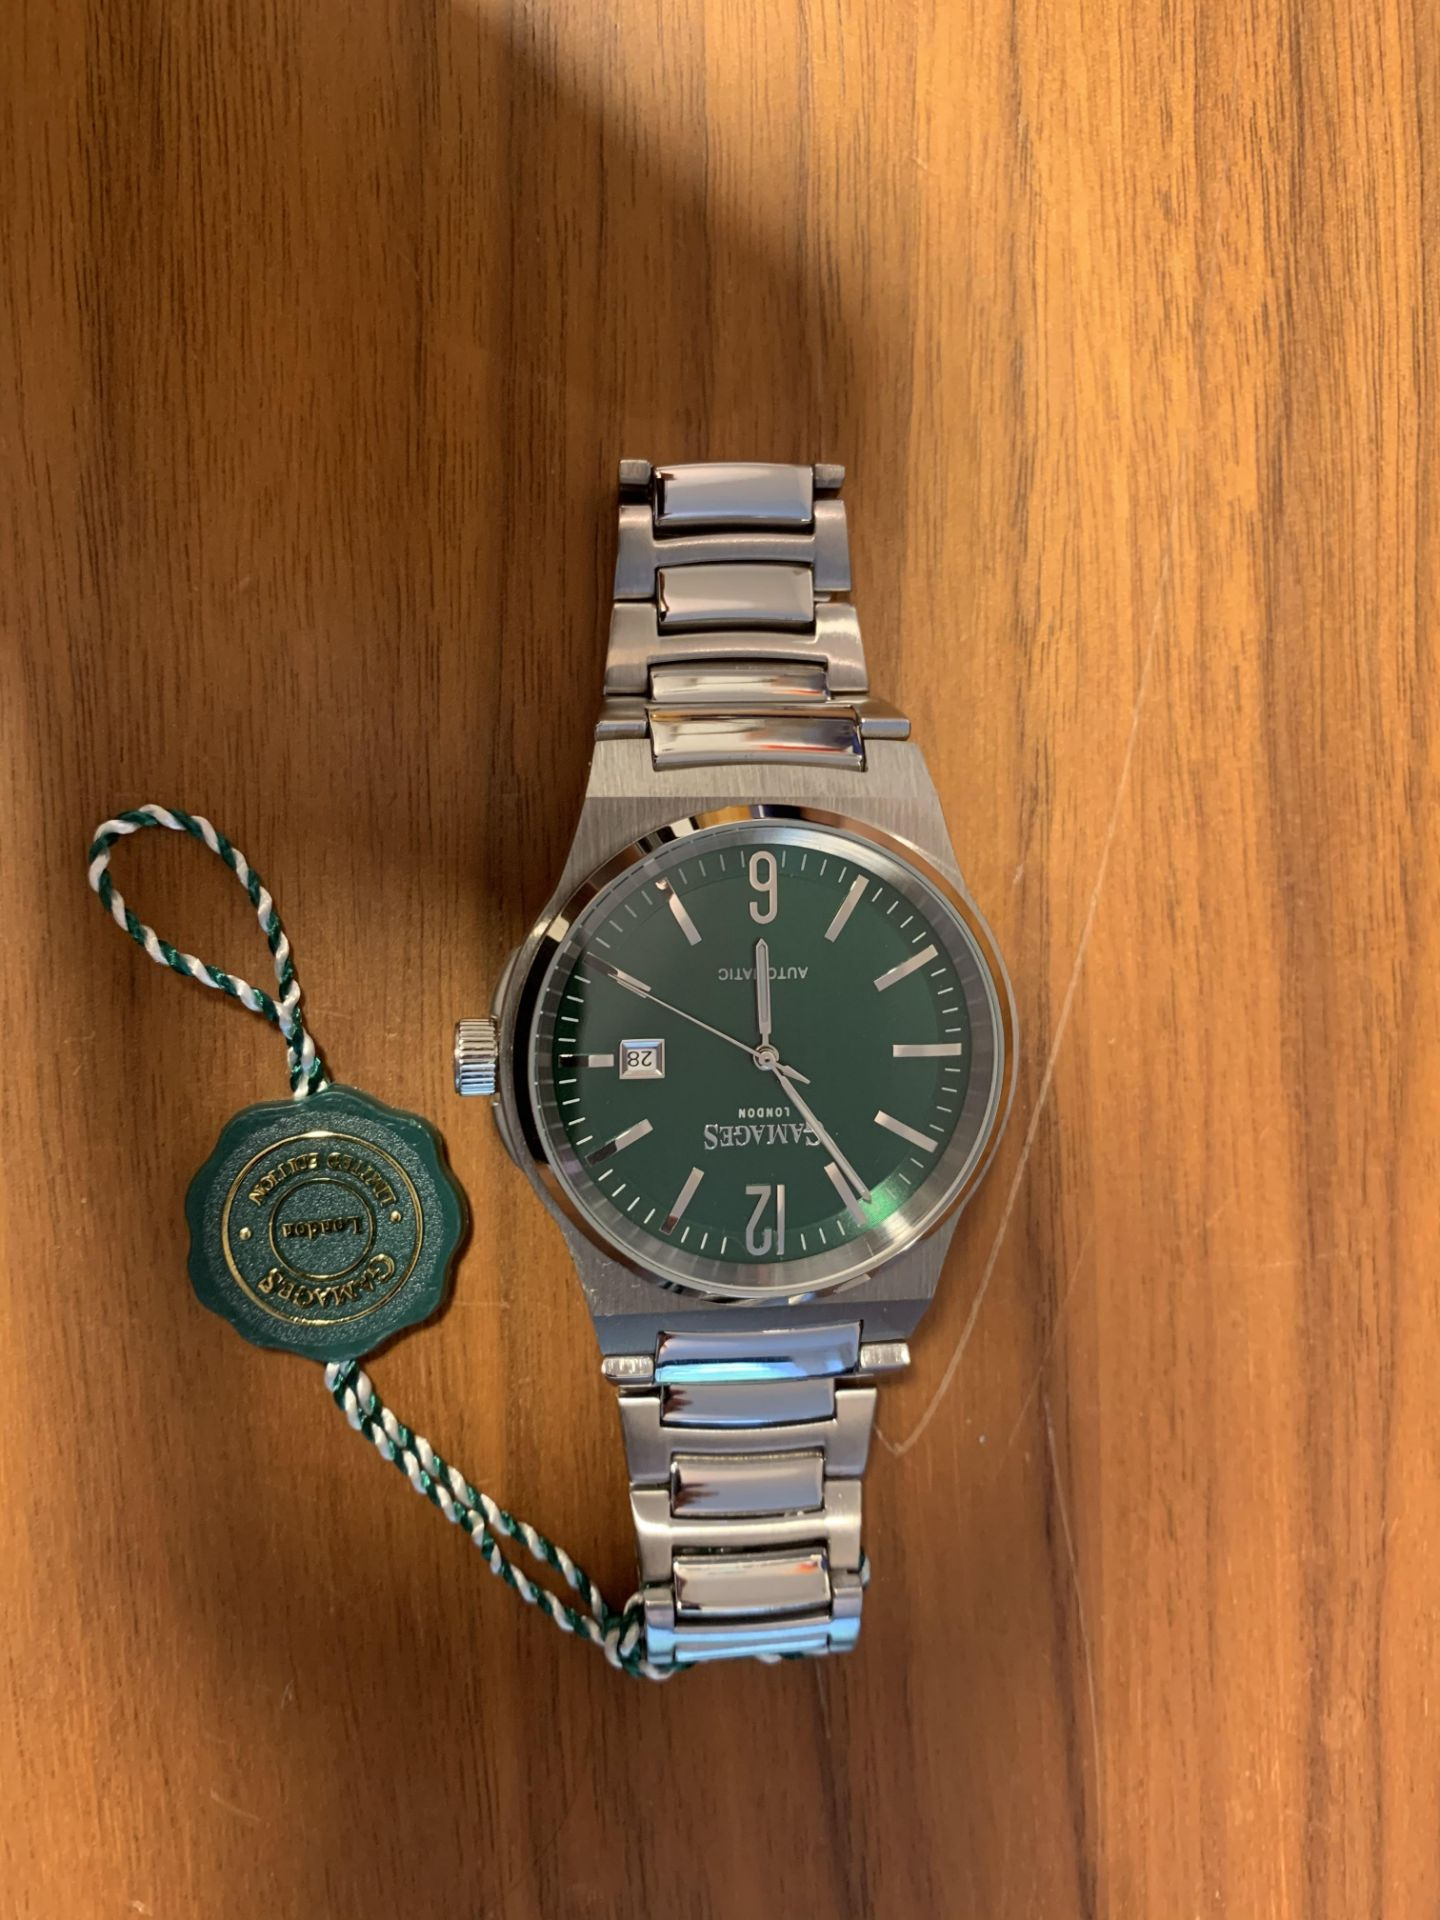 Limited Edition Hand Assembled Gamages Debonair Automatic Green – 5 Year Warranty & Free Delivery - Image 4 of 5